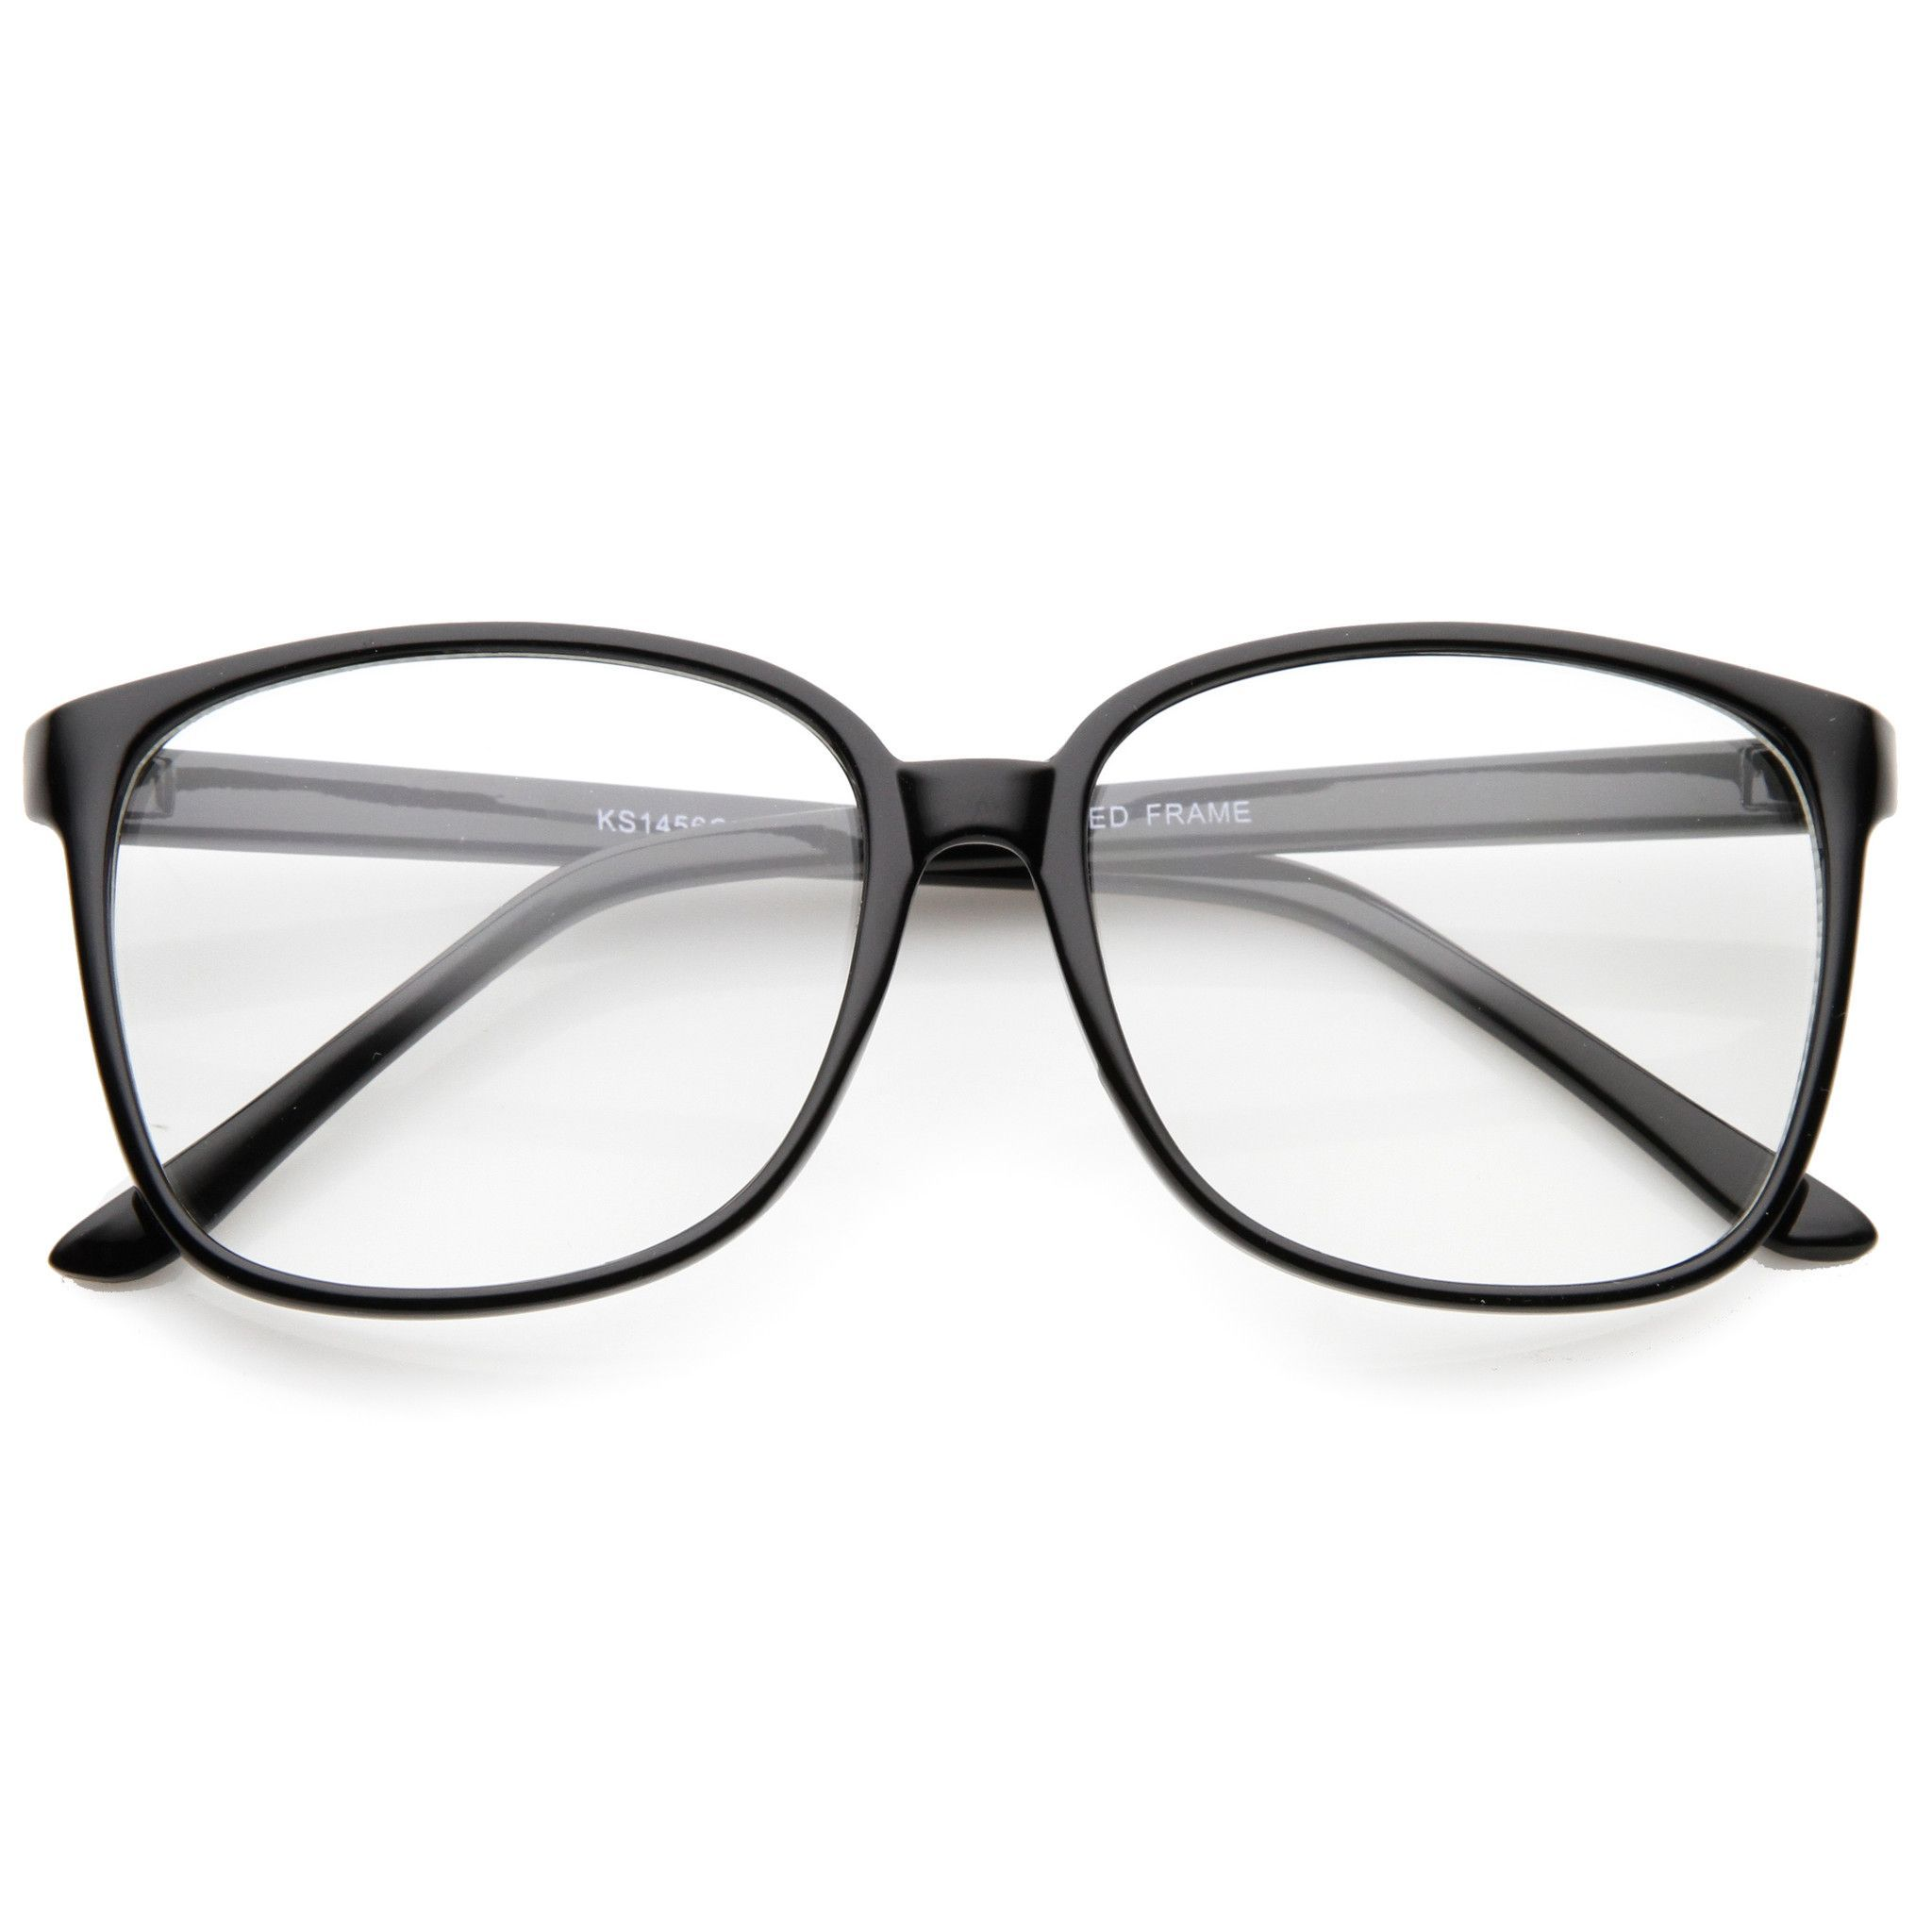 81e574365f Description - Measurements - Shipping - Add a sophisticated touch to your  look with these square clear lens glasses. Exquisitely designed with a thin  frame ...